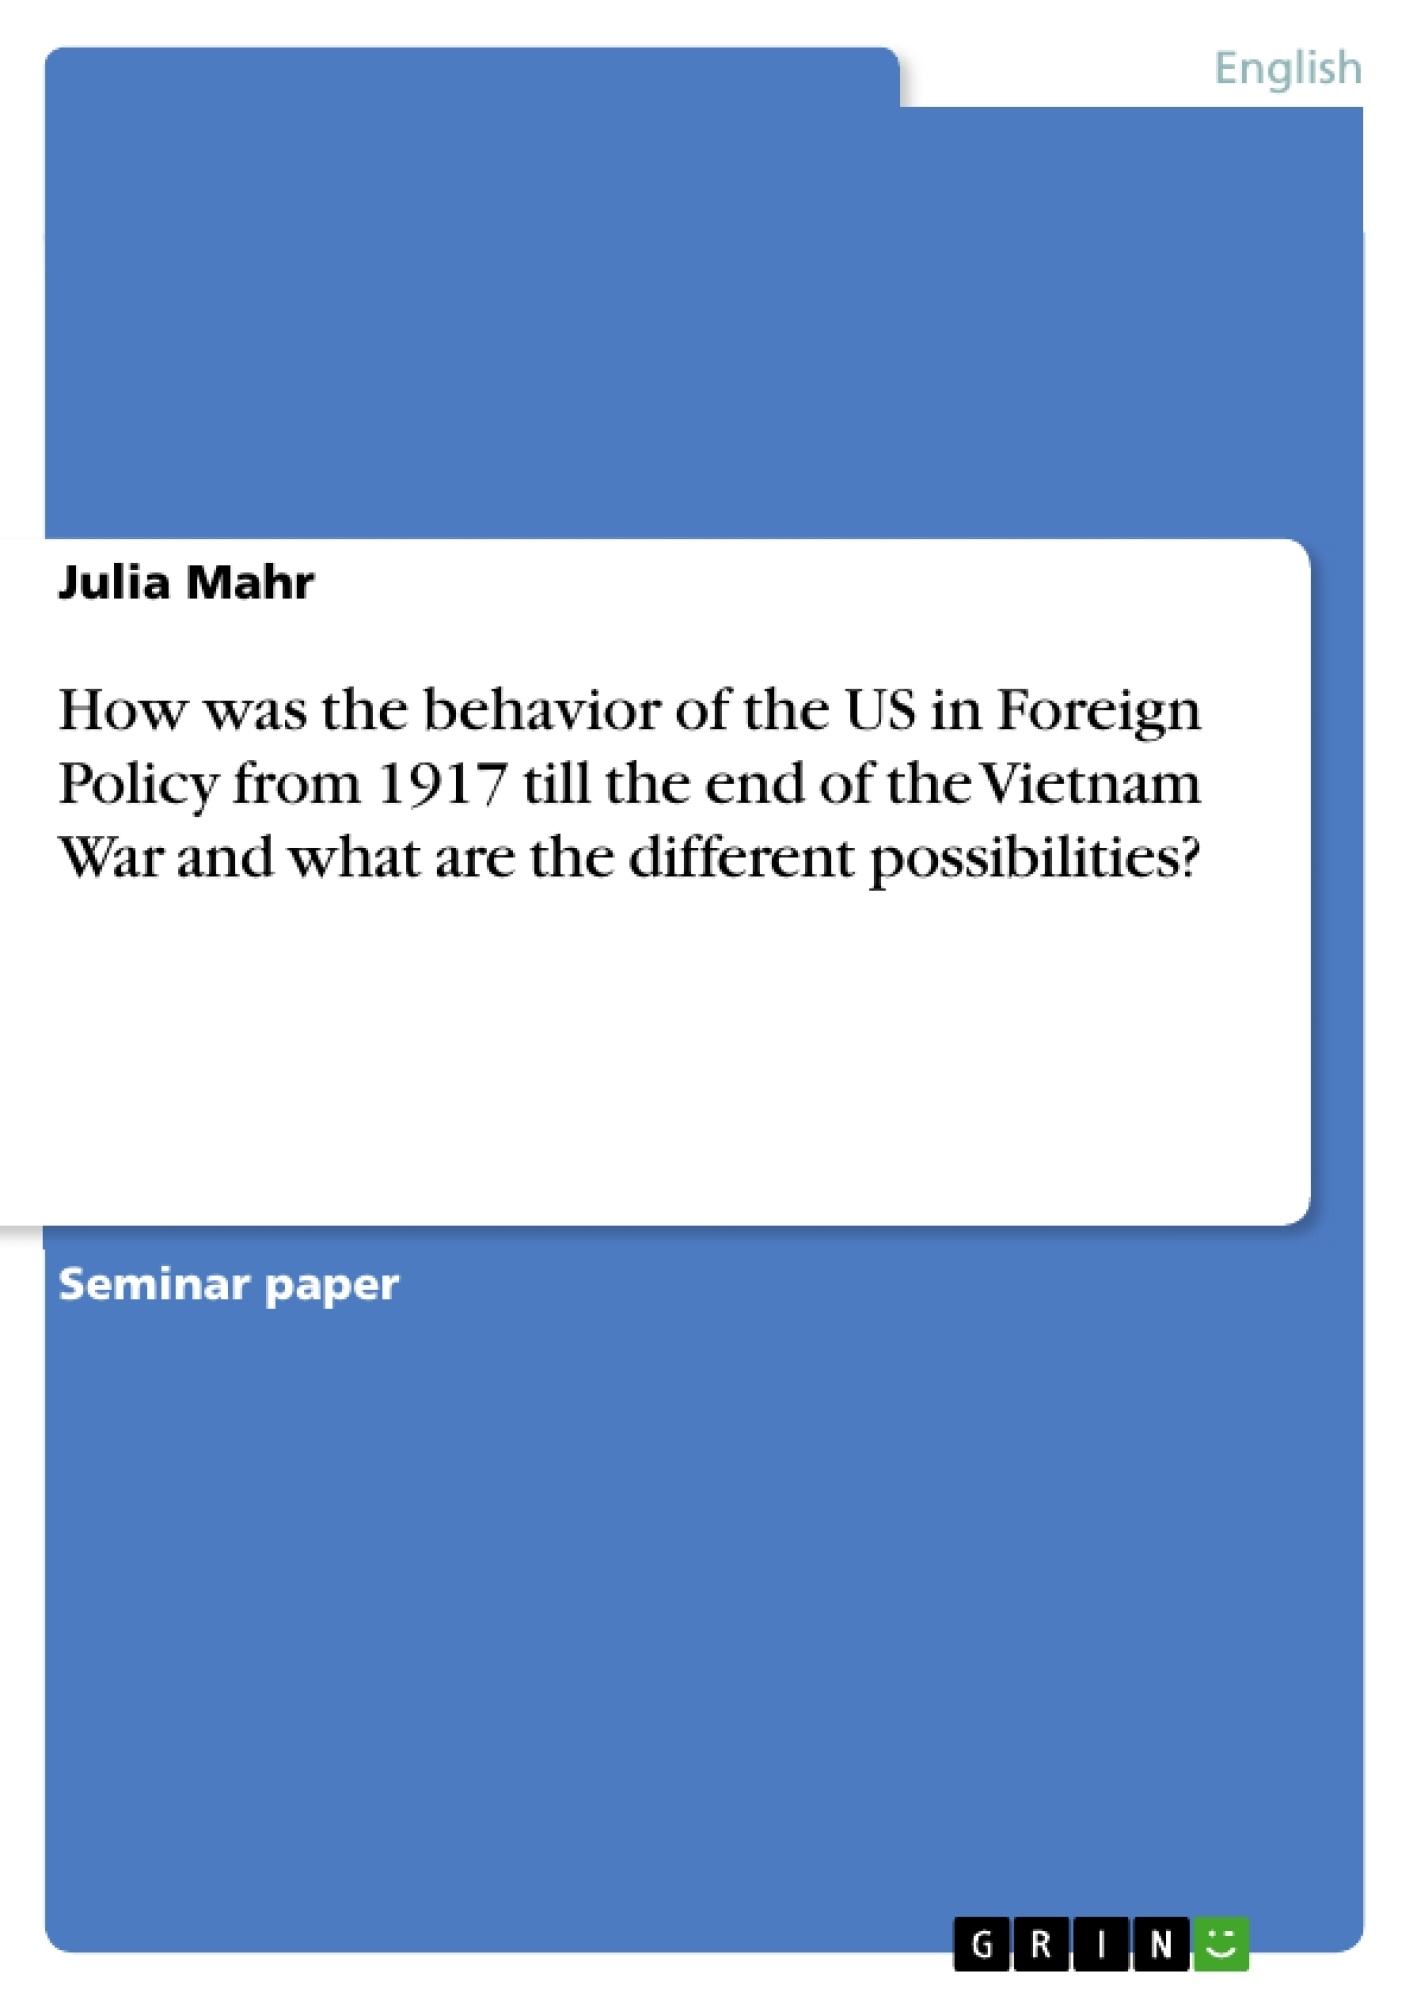 Title: How was the behavior of the US in Foreign Policy from 1917 till the end of the Vietnam War and what are the different possibilities?